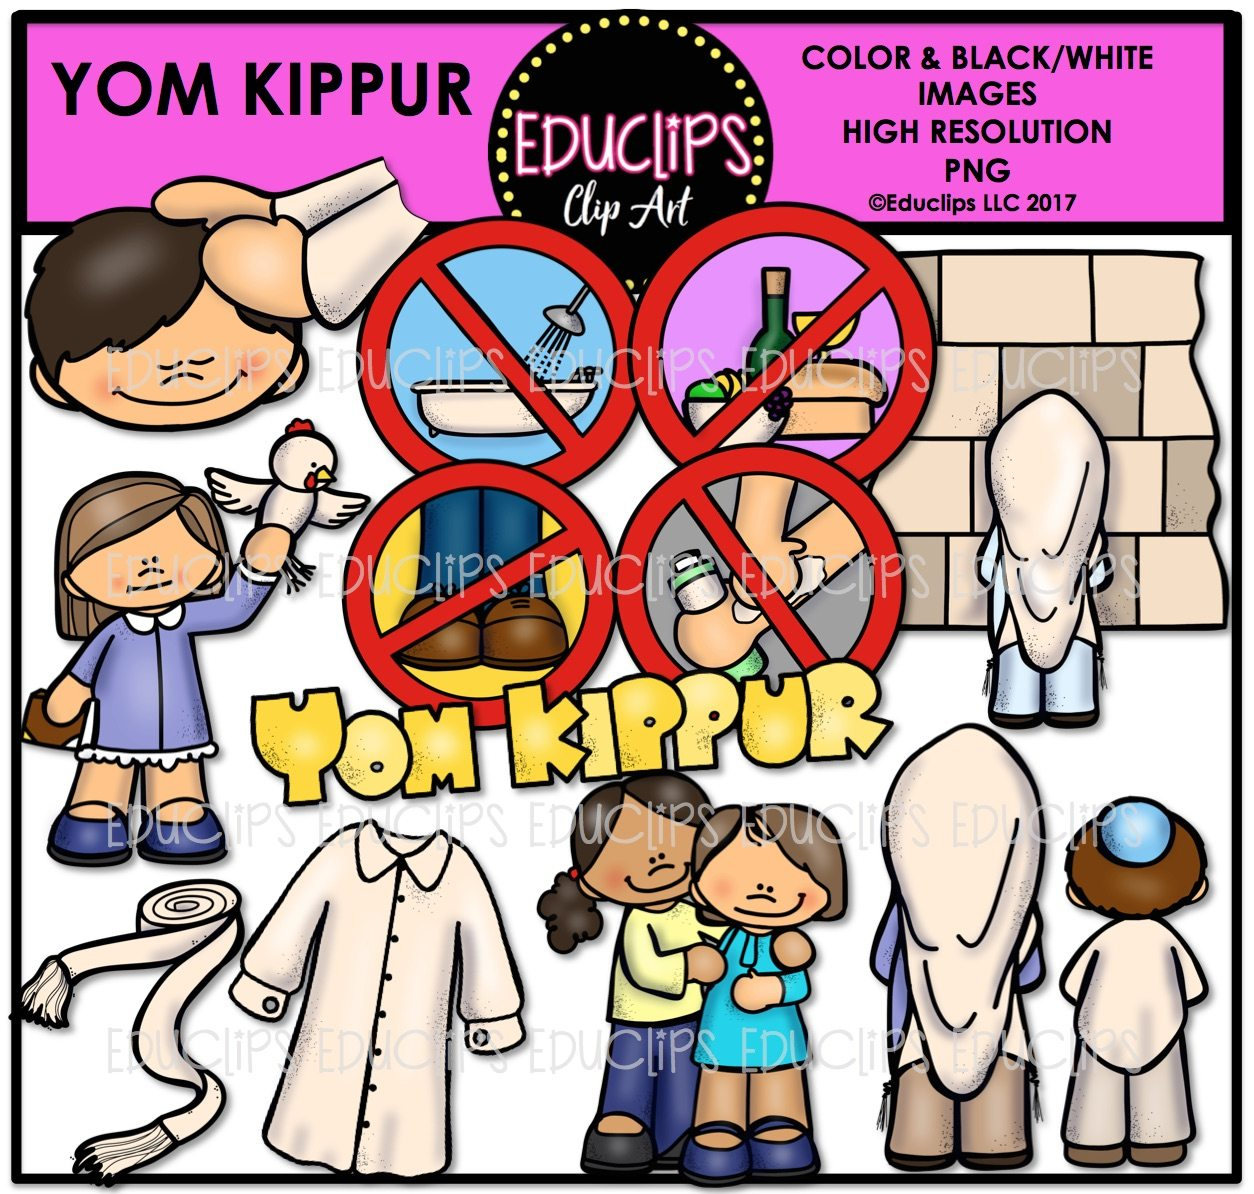 Yom Kippur Clip Art Bundle (Color and B&W).